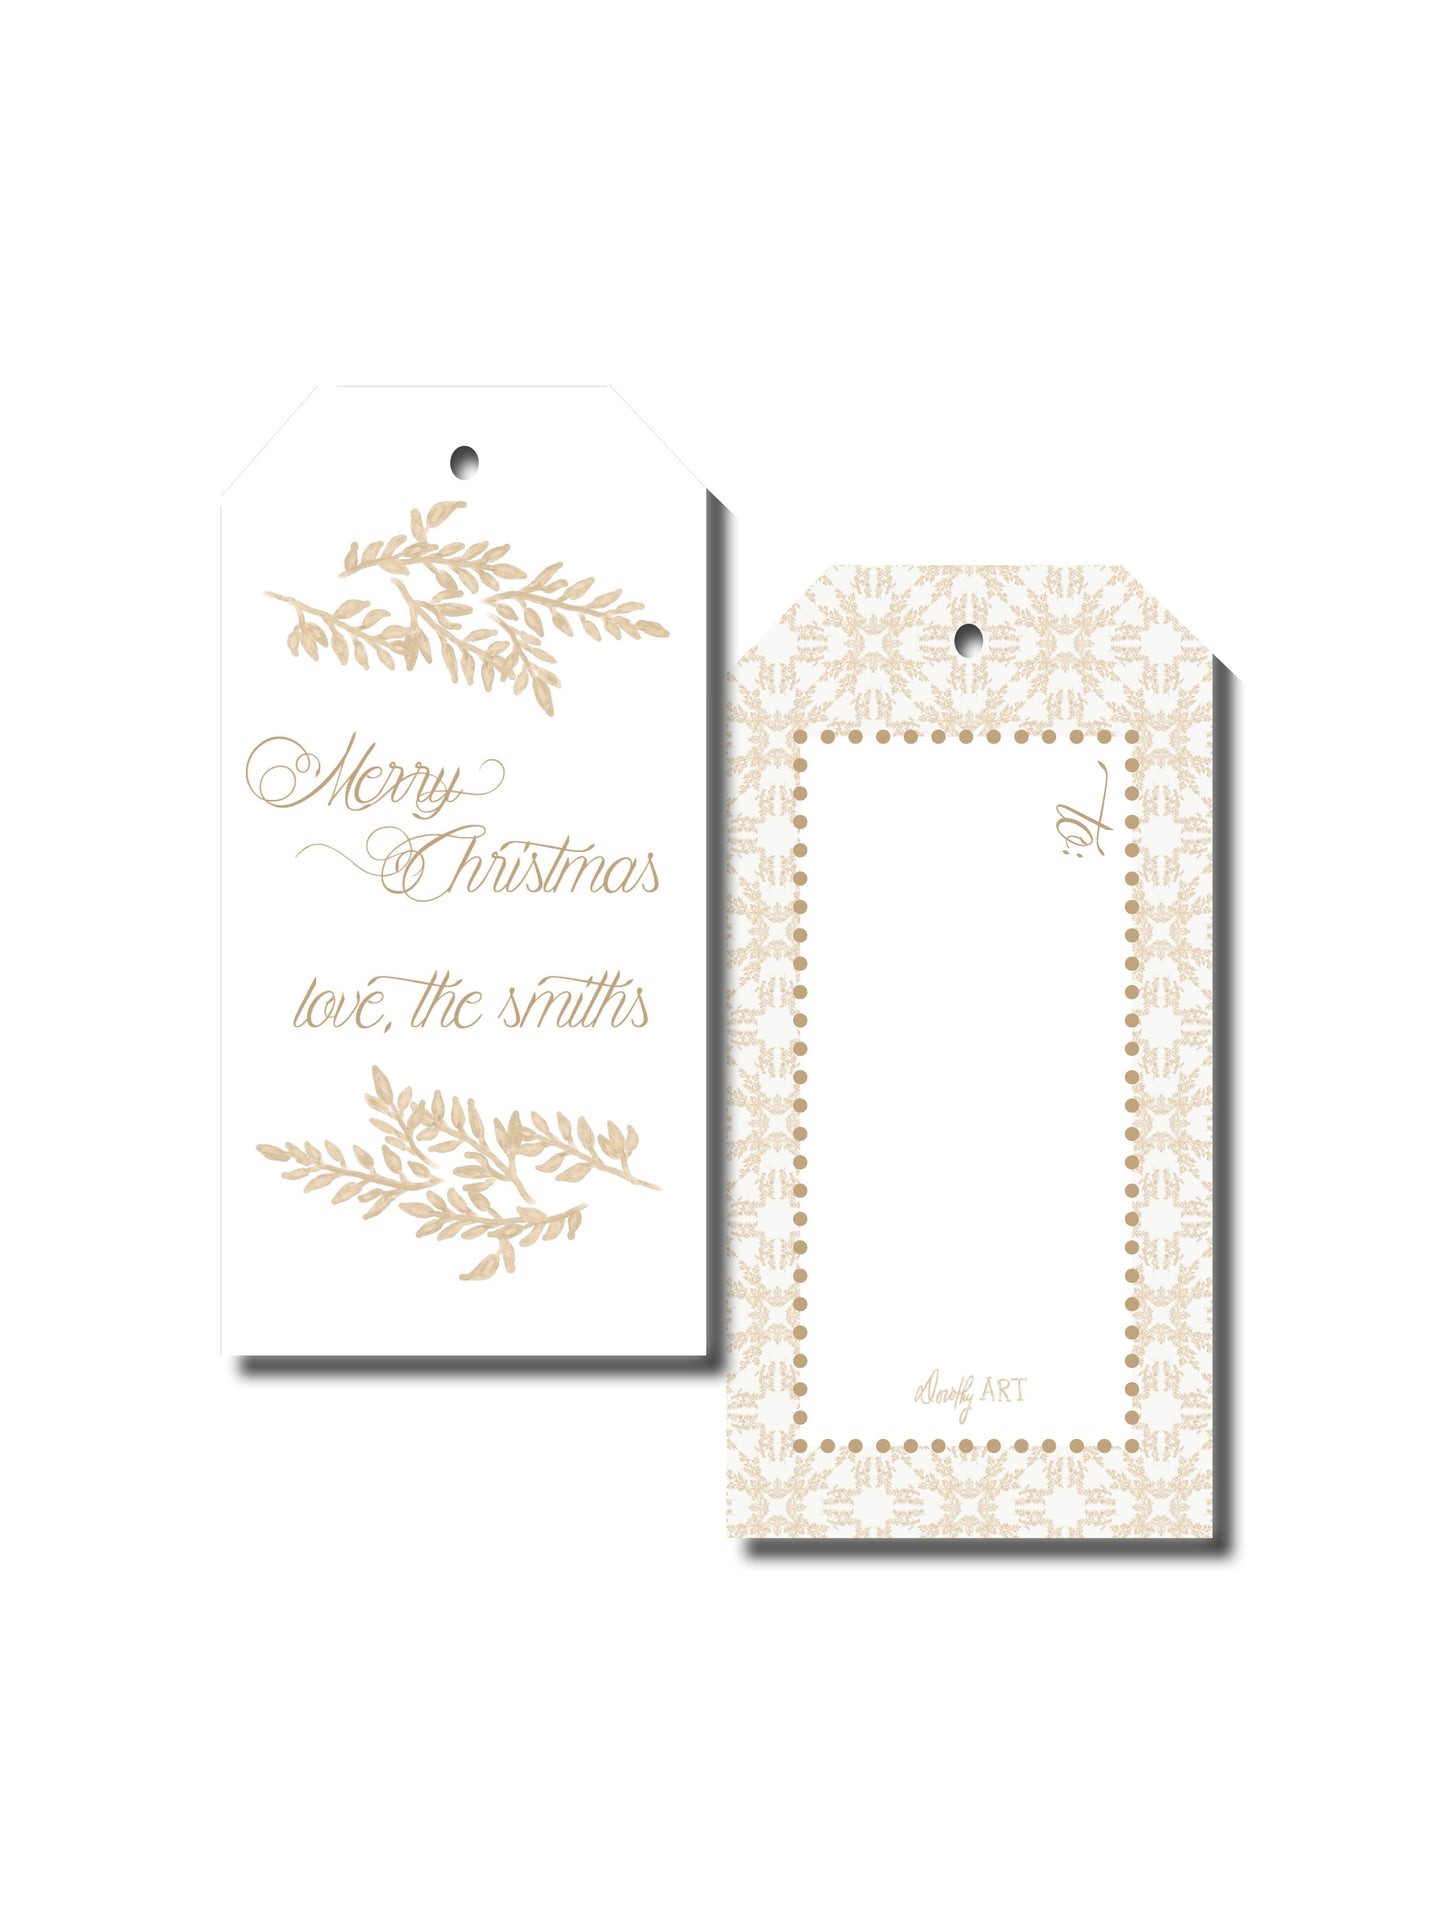 fern in creme gift tag